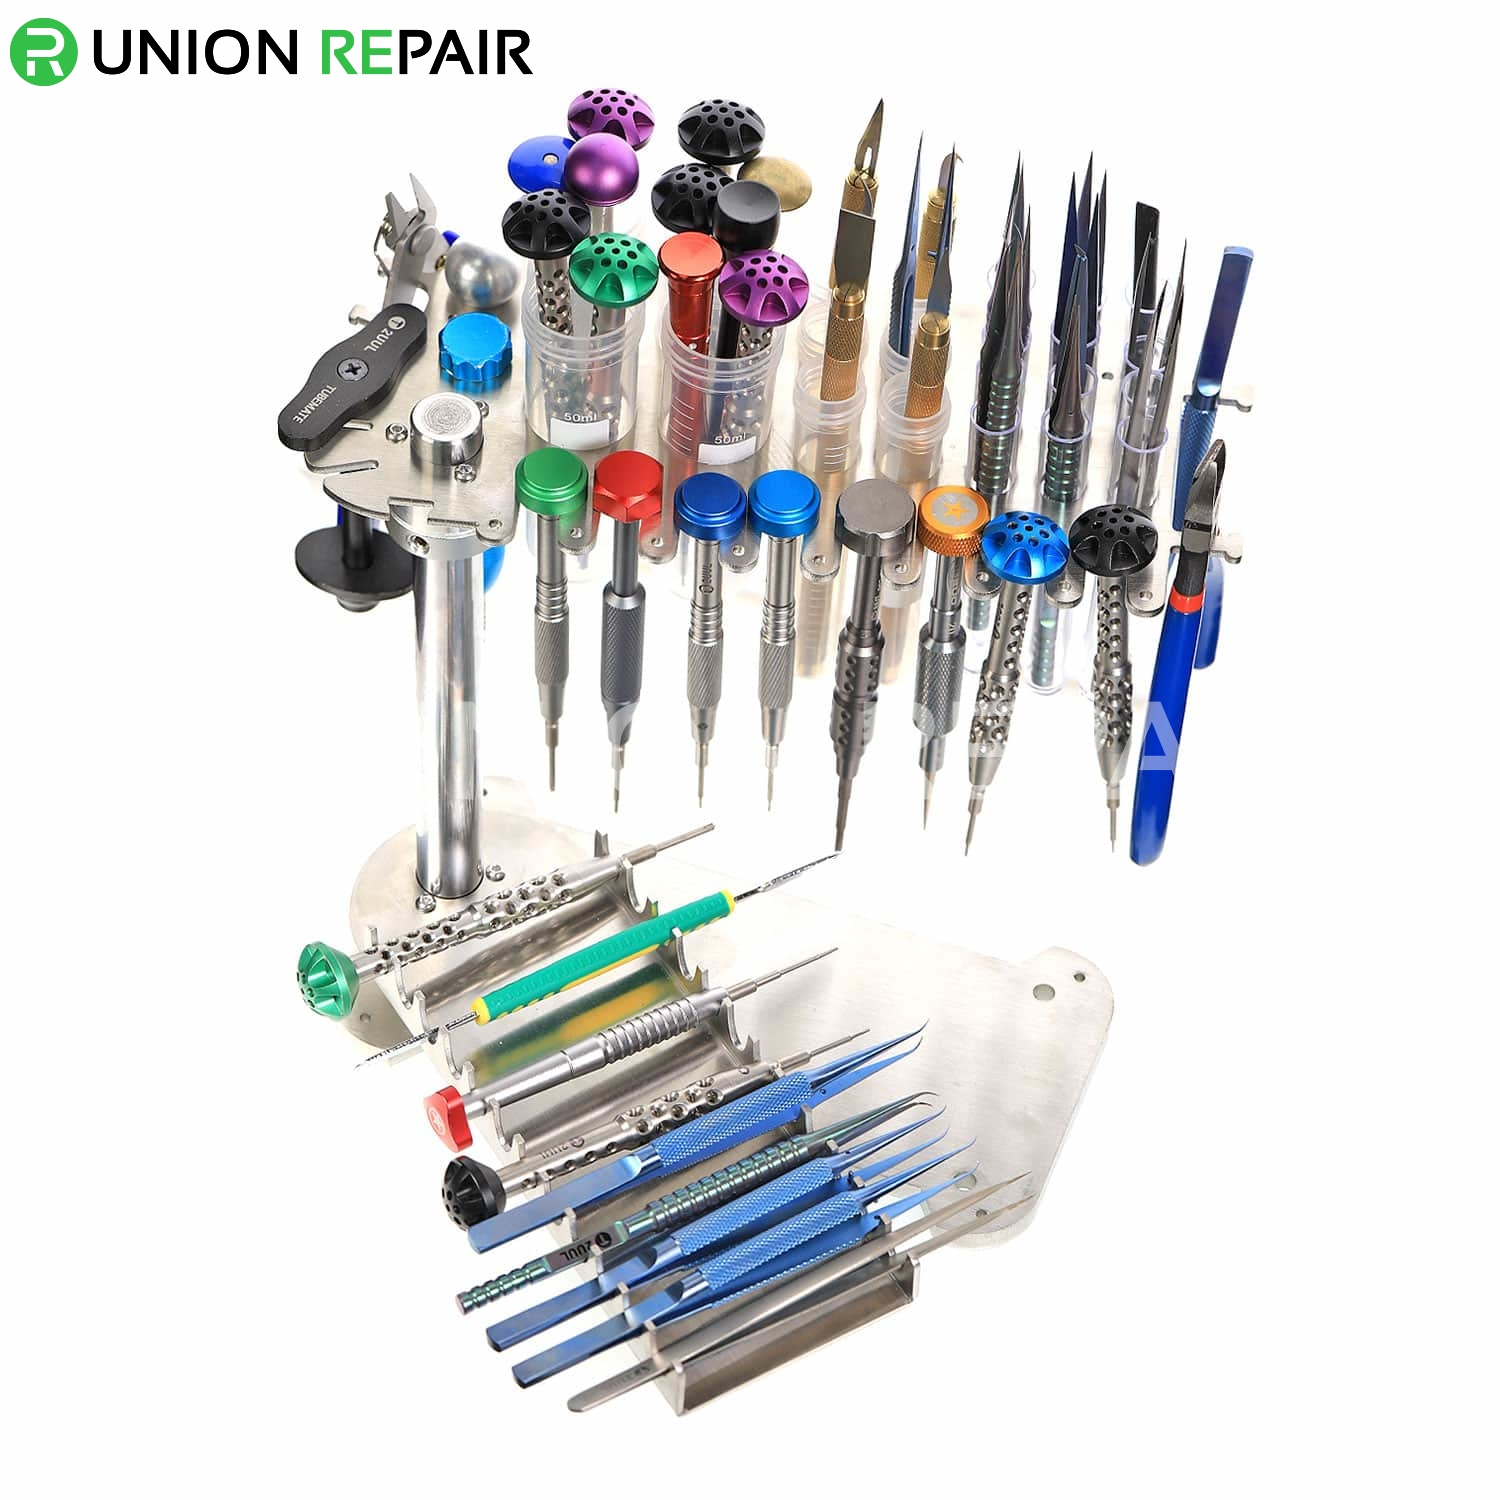 Aluminum Alloy Rotatable Screwdrivers Tool Weapon Rack, fig. 3